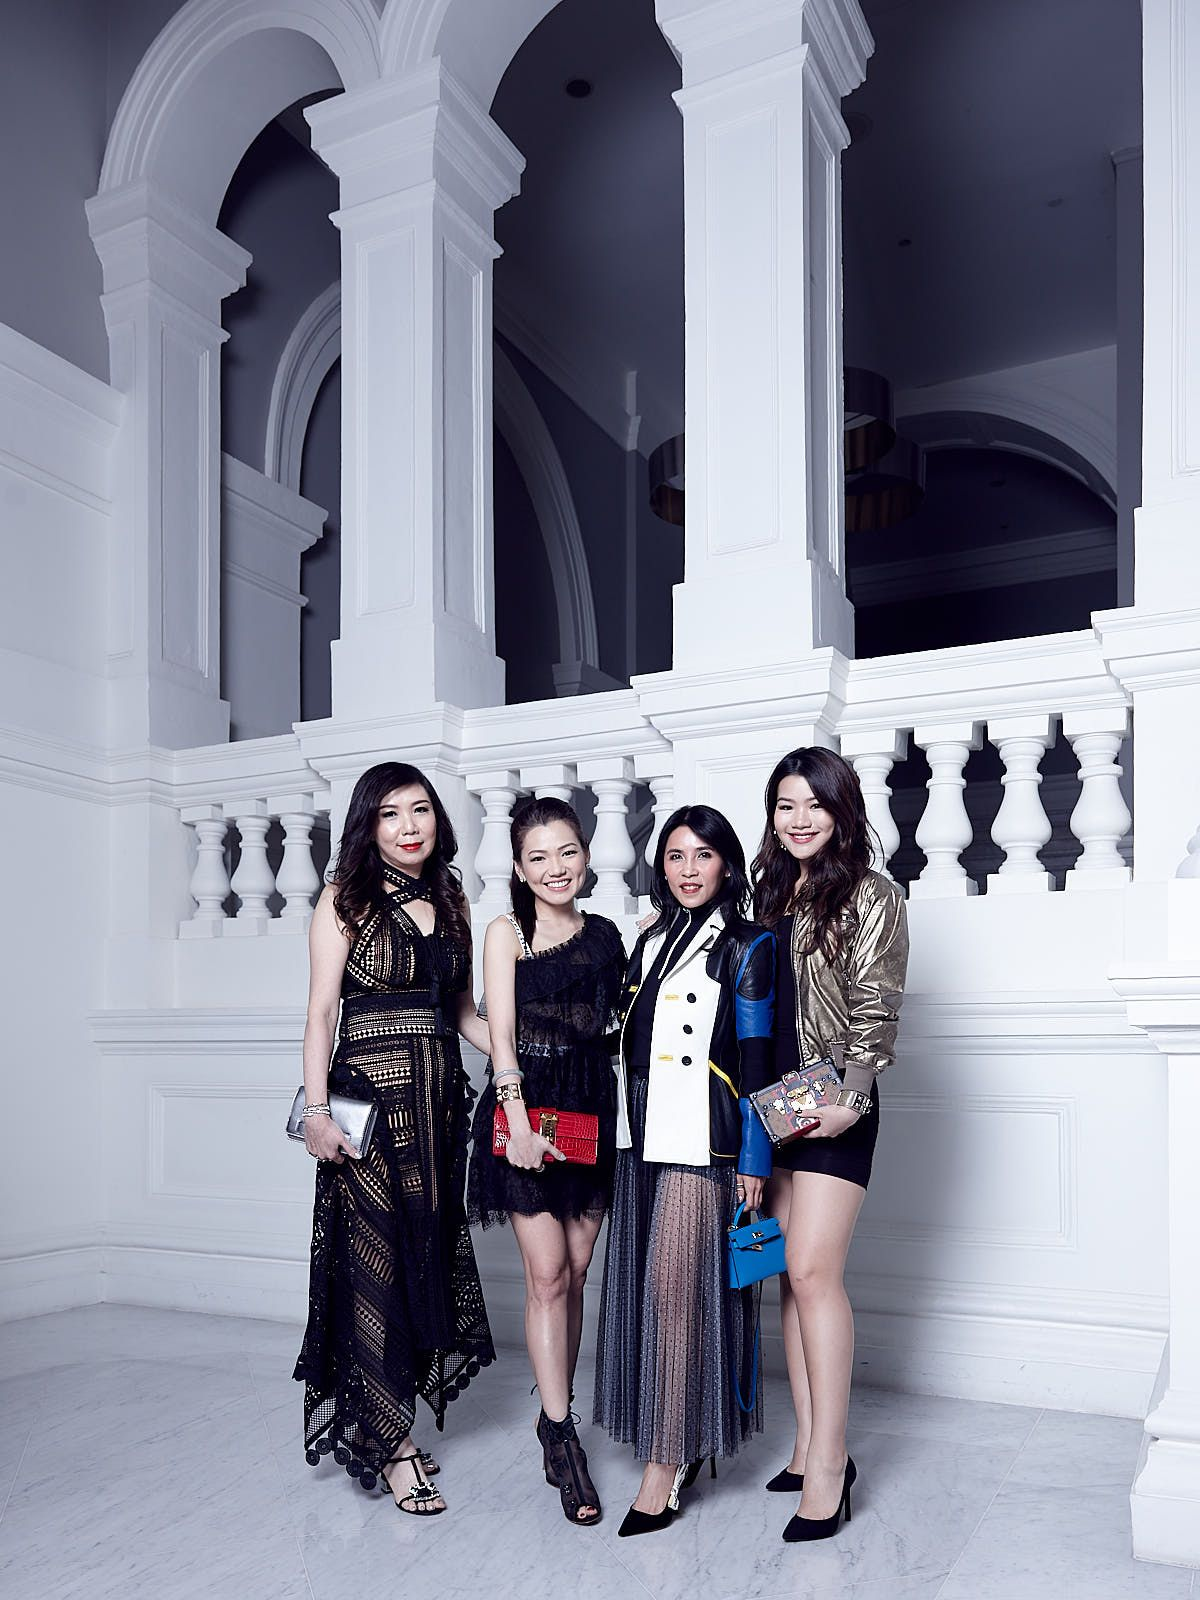 Sharon Heng, Angela Ng in Dior, Fanty Soenardy in Dior, Adeline Teo in Louis Vuitton